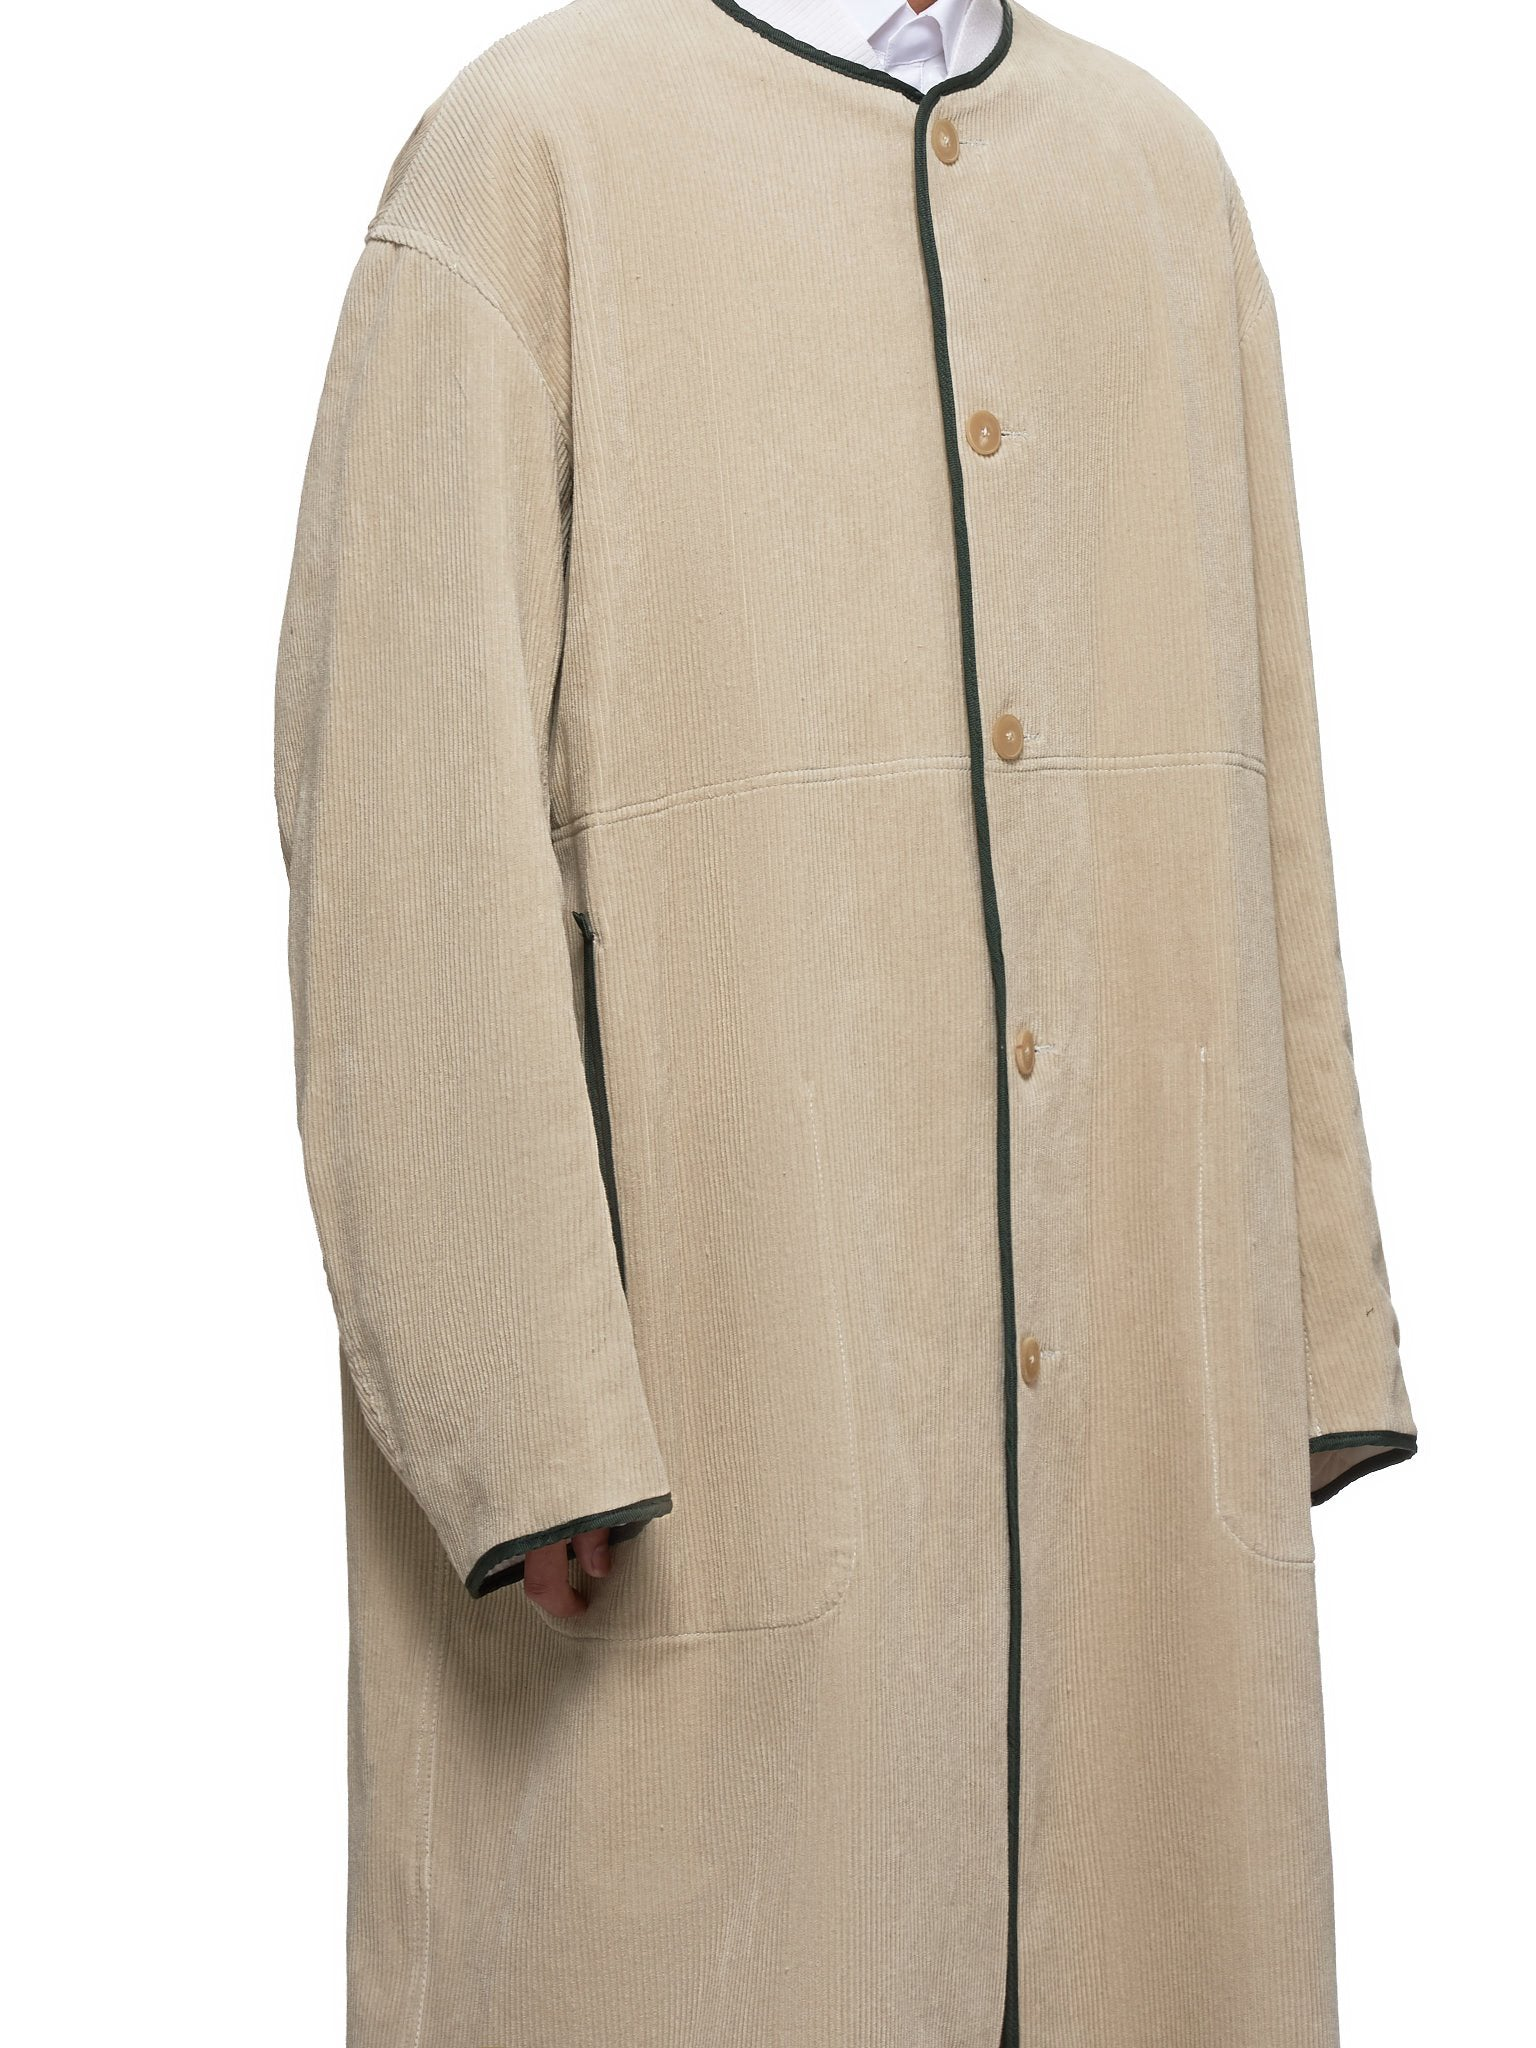 Haider Ackermann Coat - Hlorenzo Detail 2